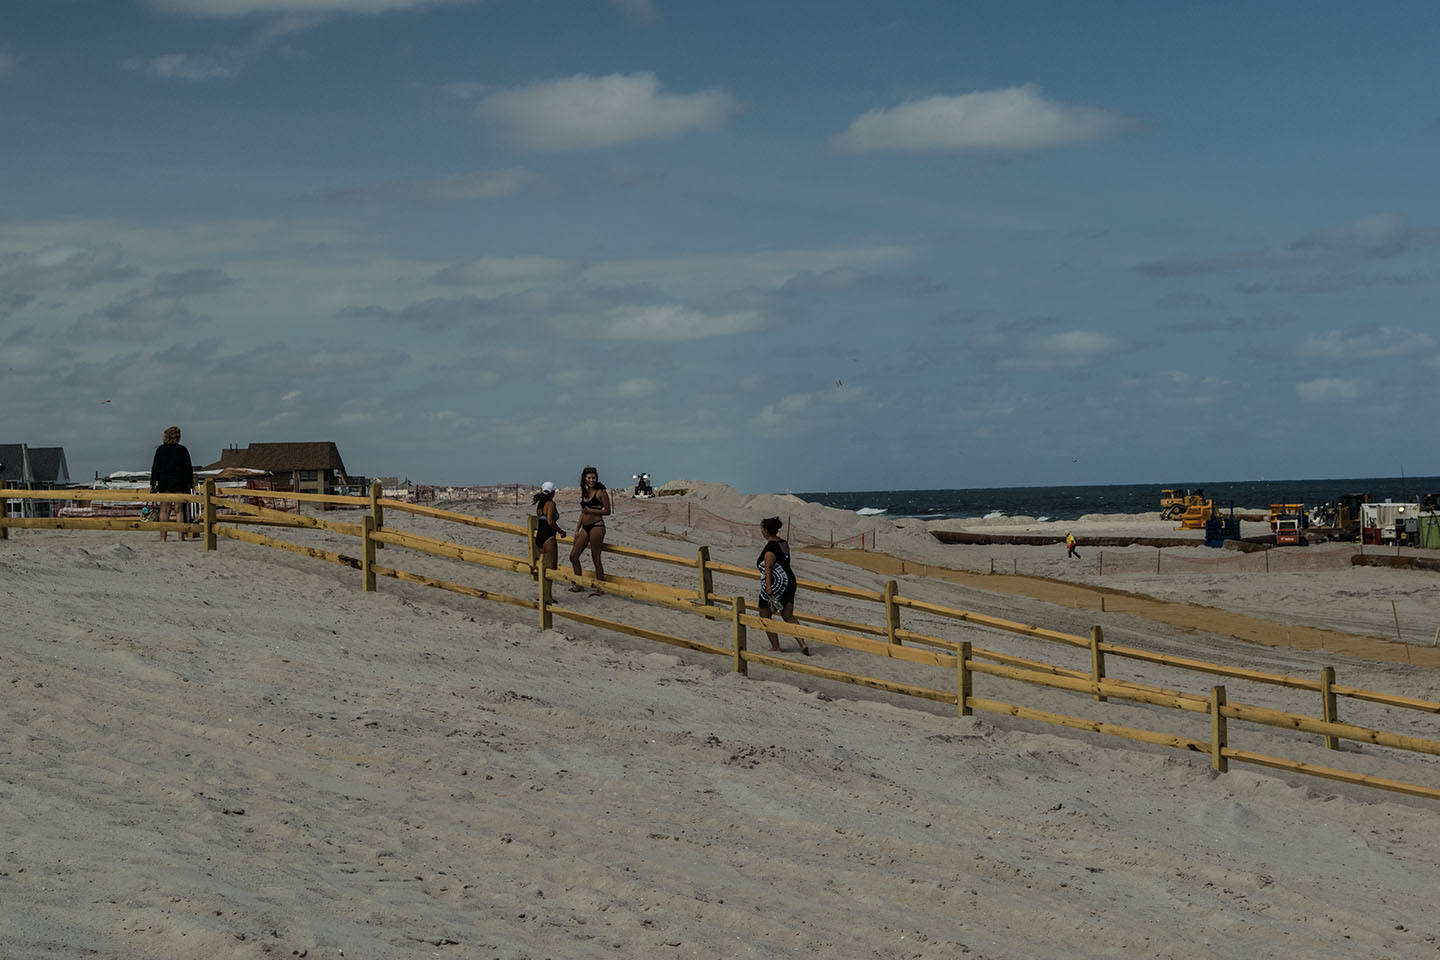 Beachgoers enter the newly-designed beachfront in Ortley Beach, Sept. 1, 2018. (Photo: Daniel Nee)